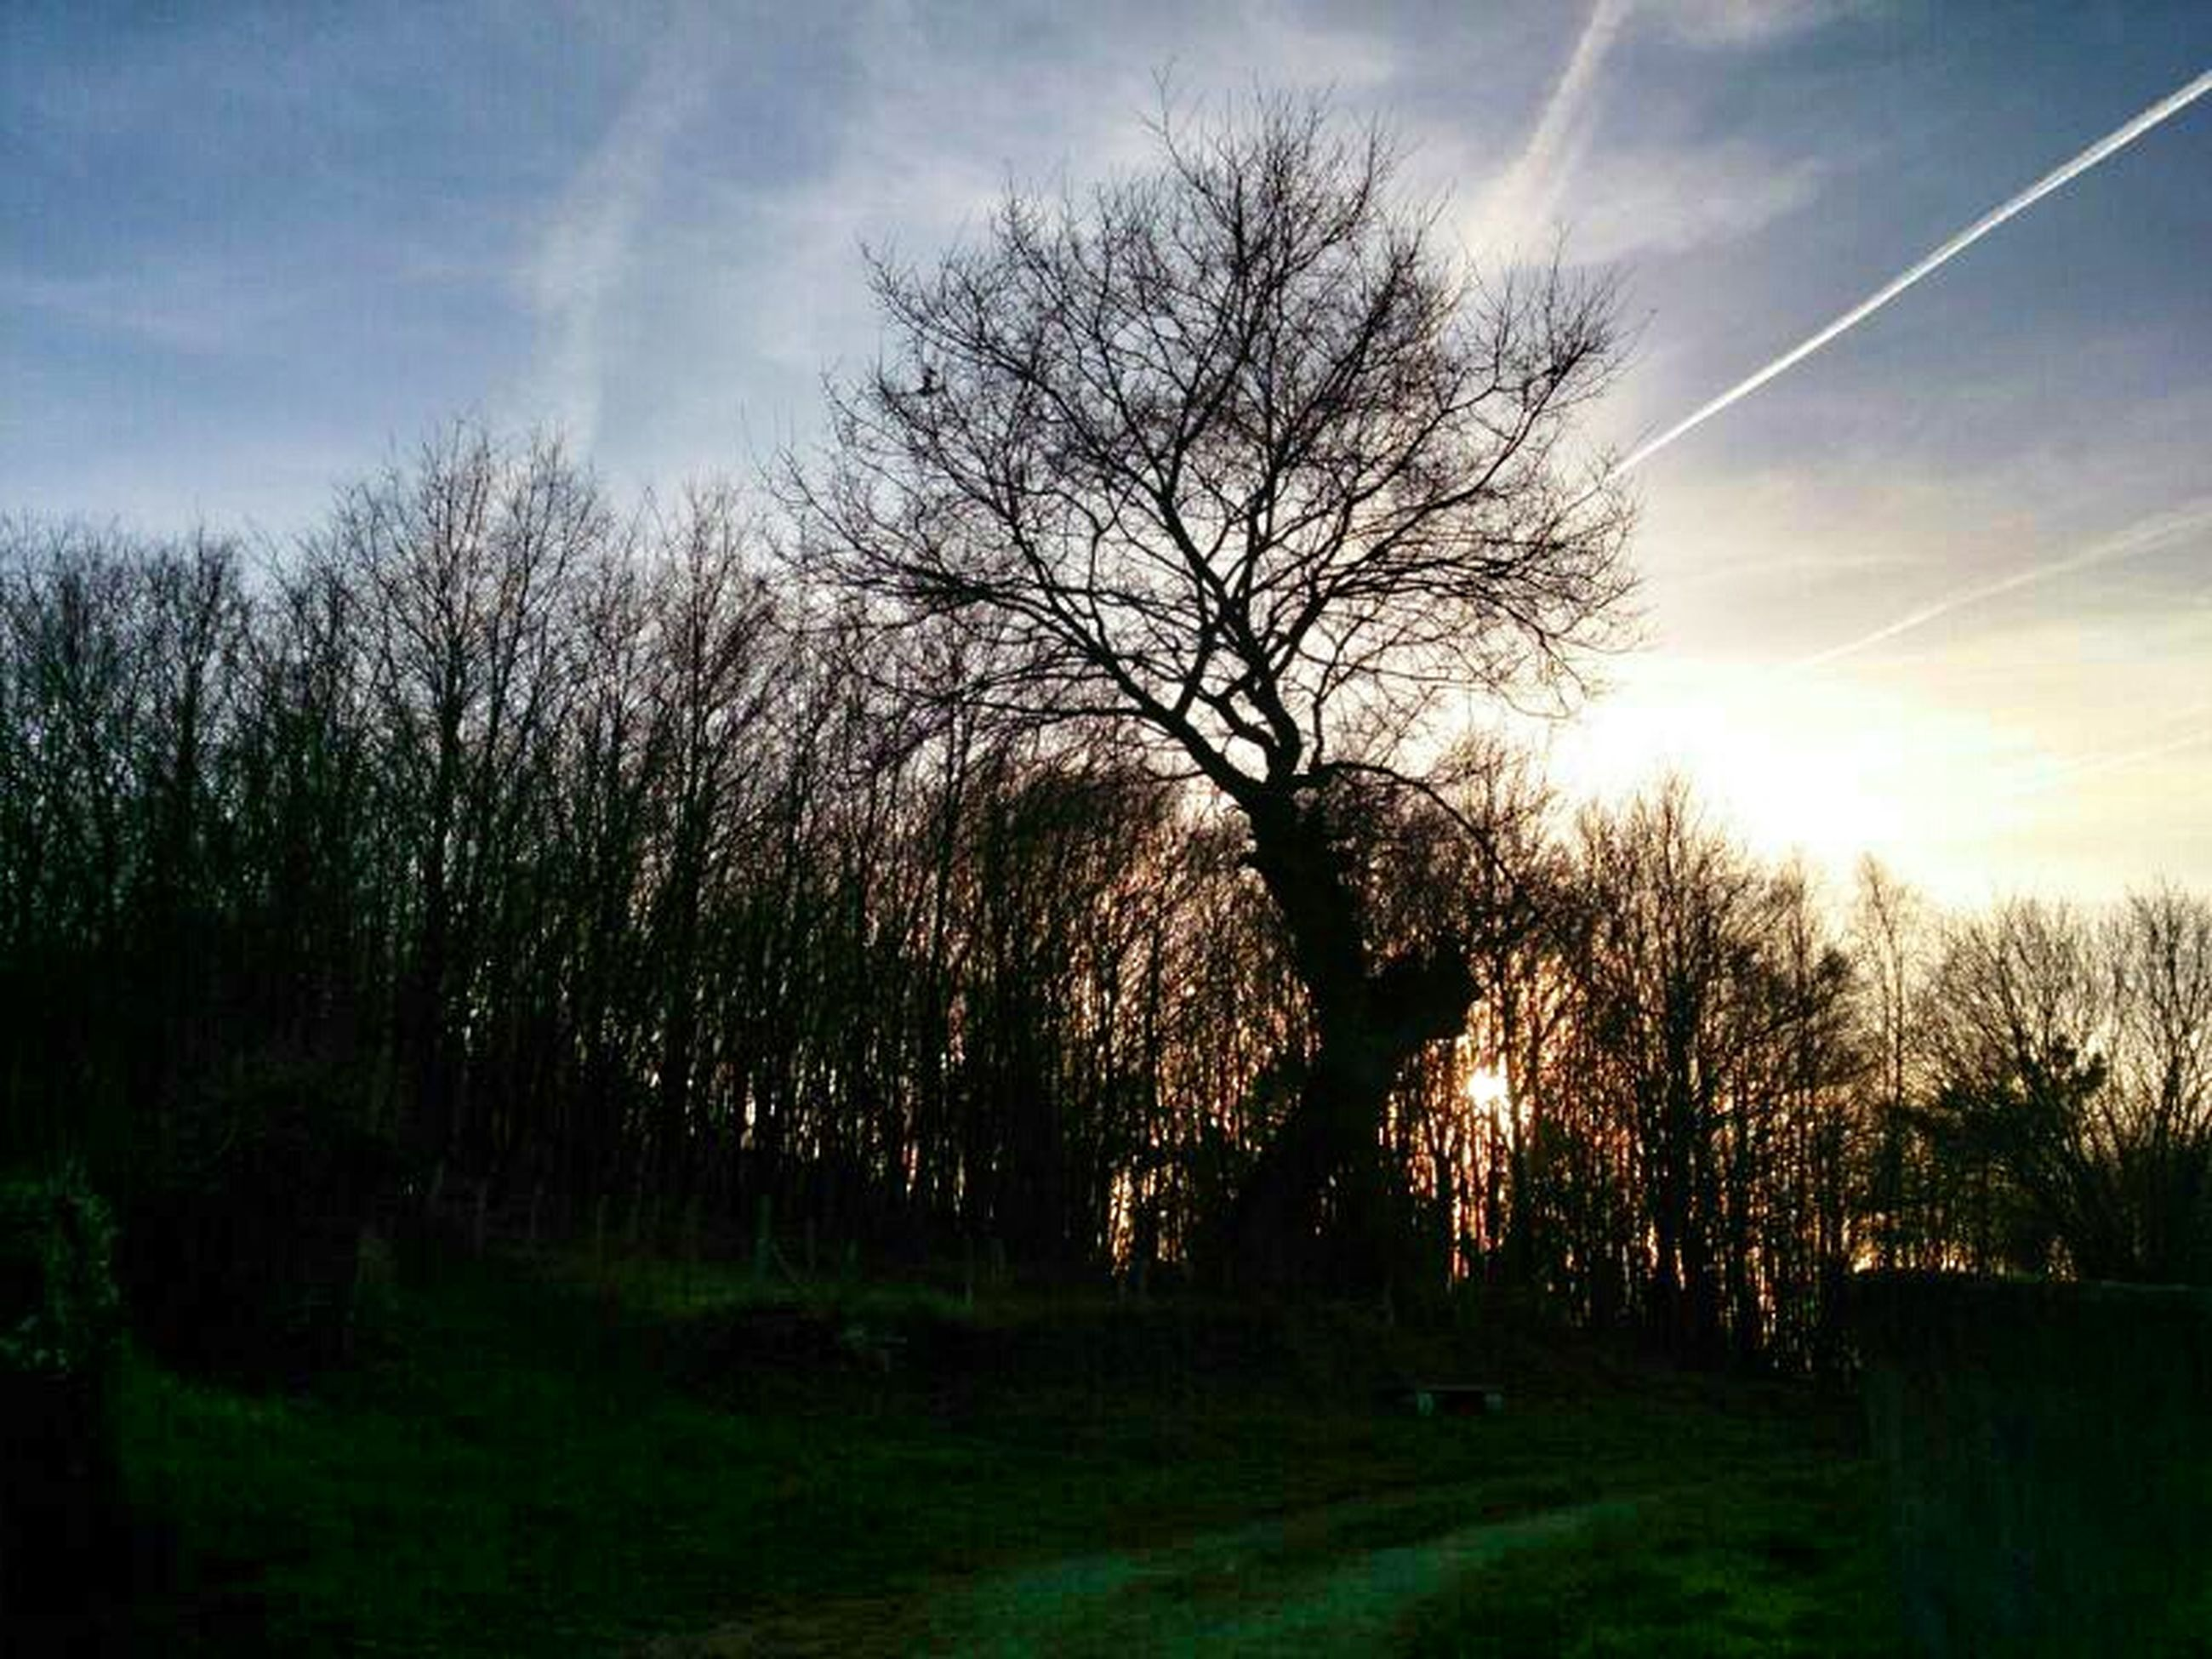 tree, bare tree, sky, tranquility, tranquil scene, landscape, scenics, field, beauty in nature, nature, branch, cloud - sky, grass, sunlight, tree trunk, growth, sunset, cloud, silhouette, non-urban scene